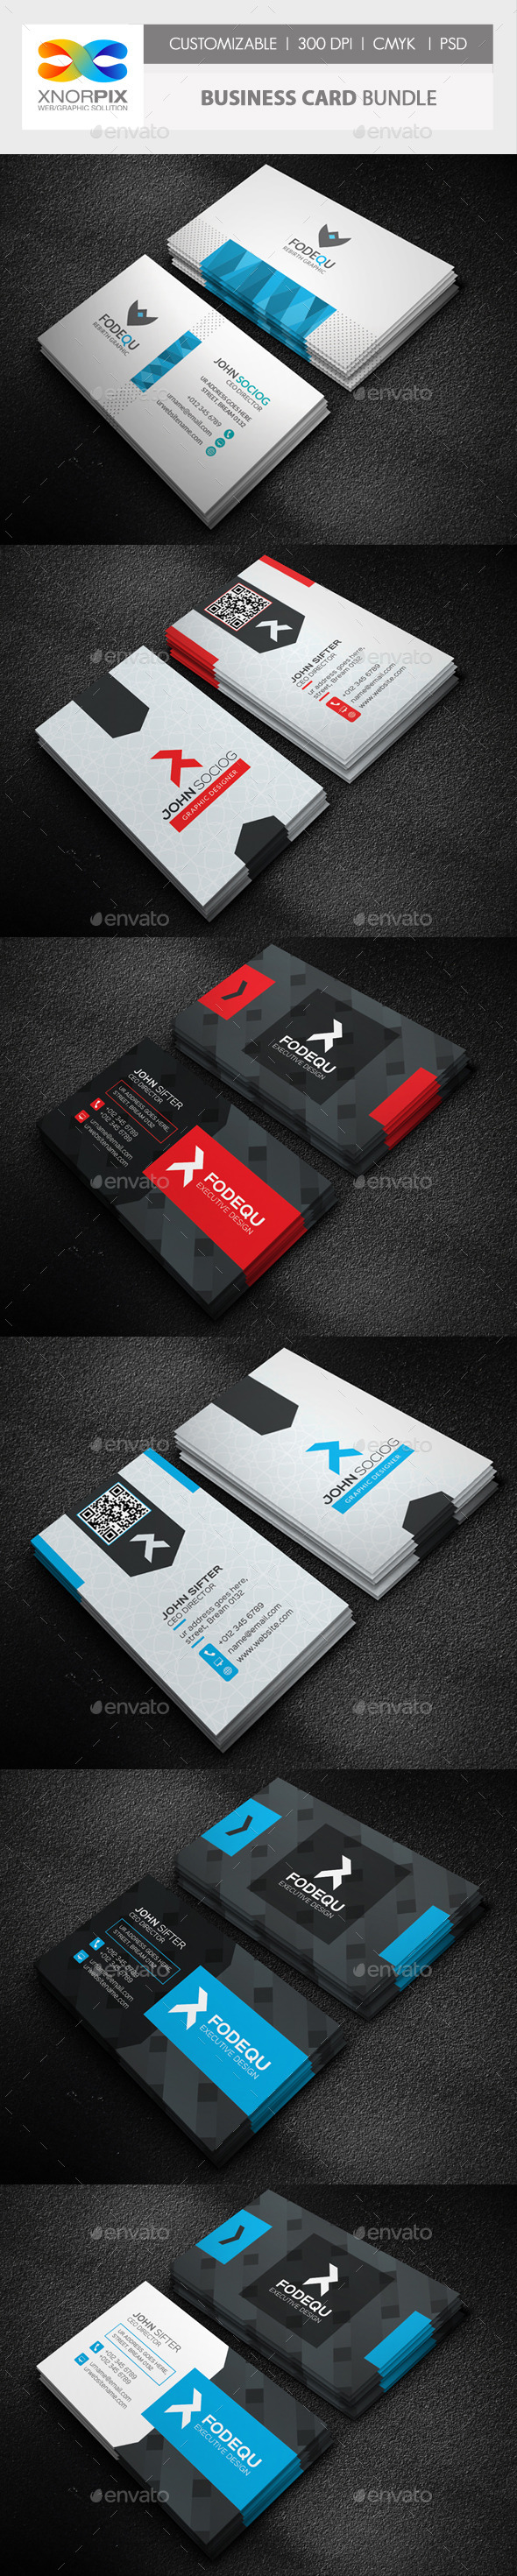 GraphicRiver Business Card Bundle 3 in 1-Vol 48 10674203